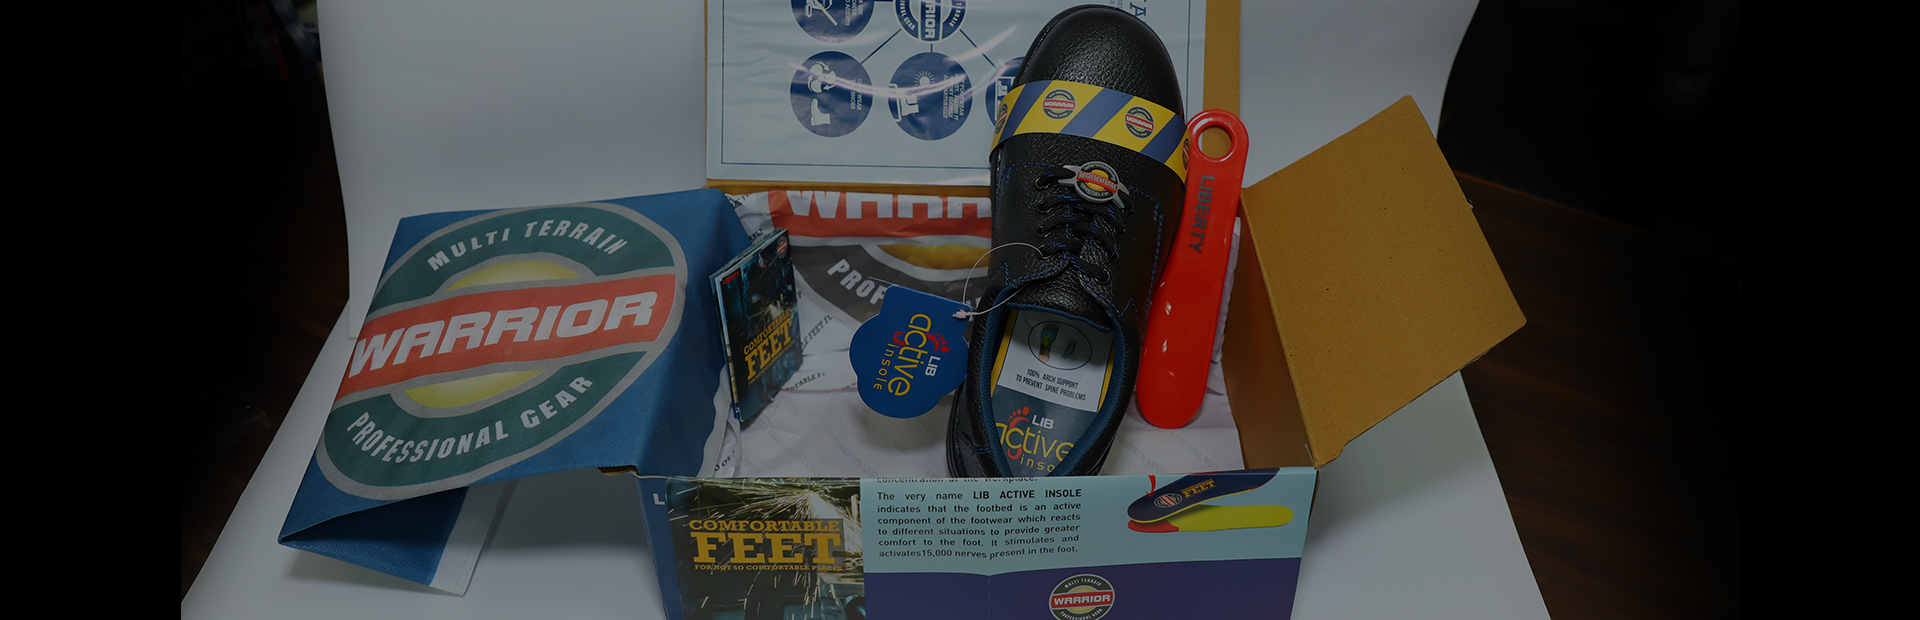 safety shoes packing